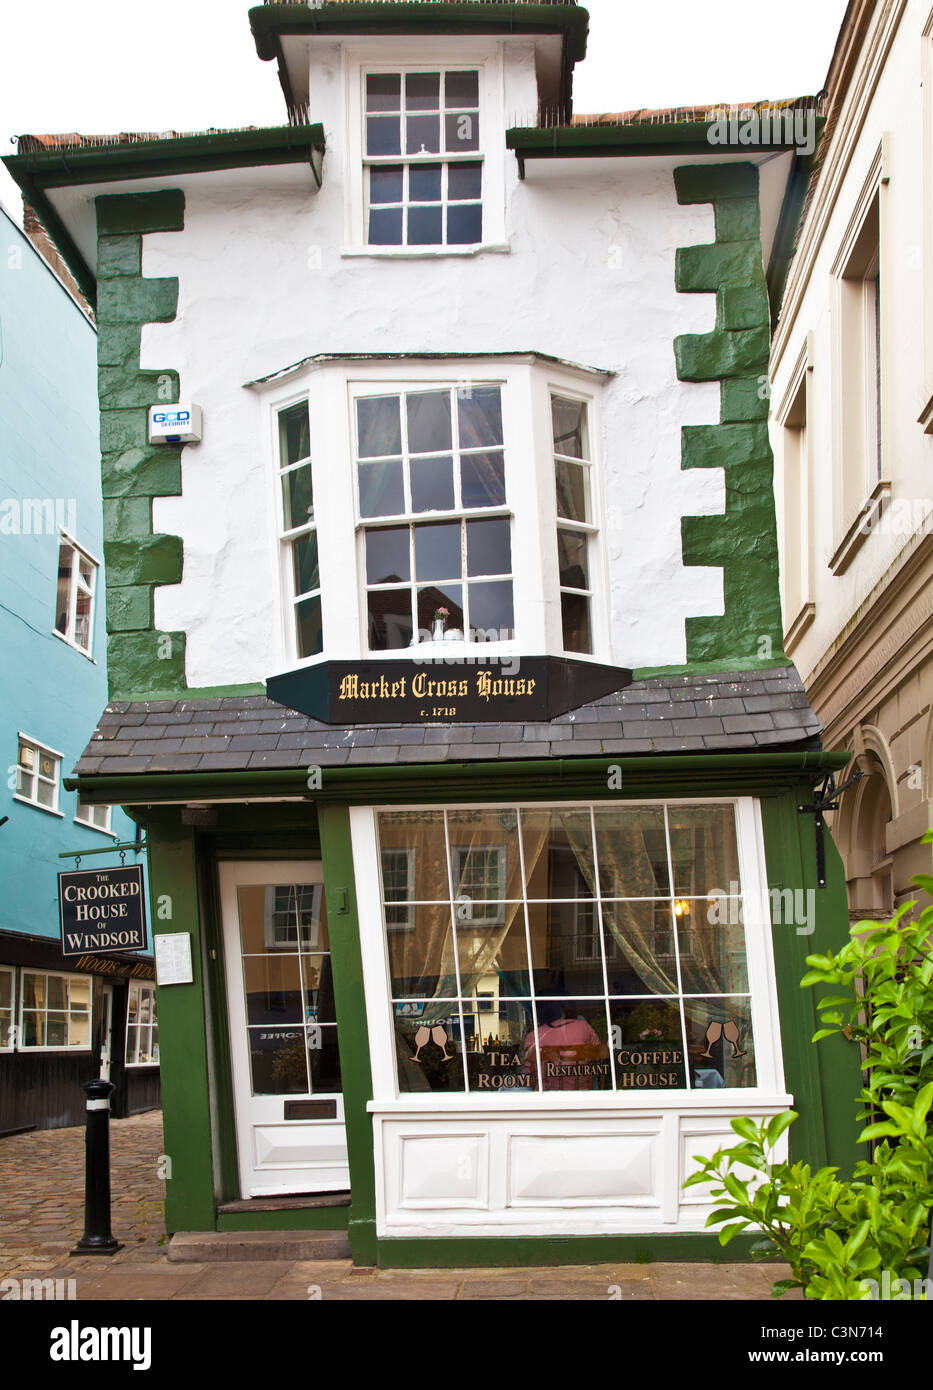 The Crooked House in Market Street a narrow cobbled backstreet in Windsor, Berkshire, England, UK - Stock Image